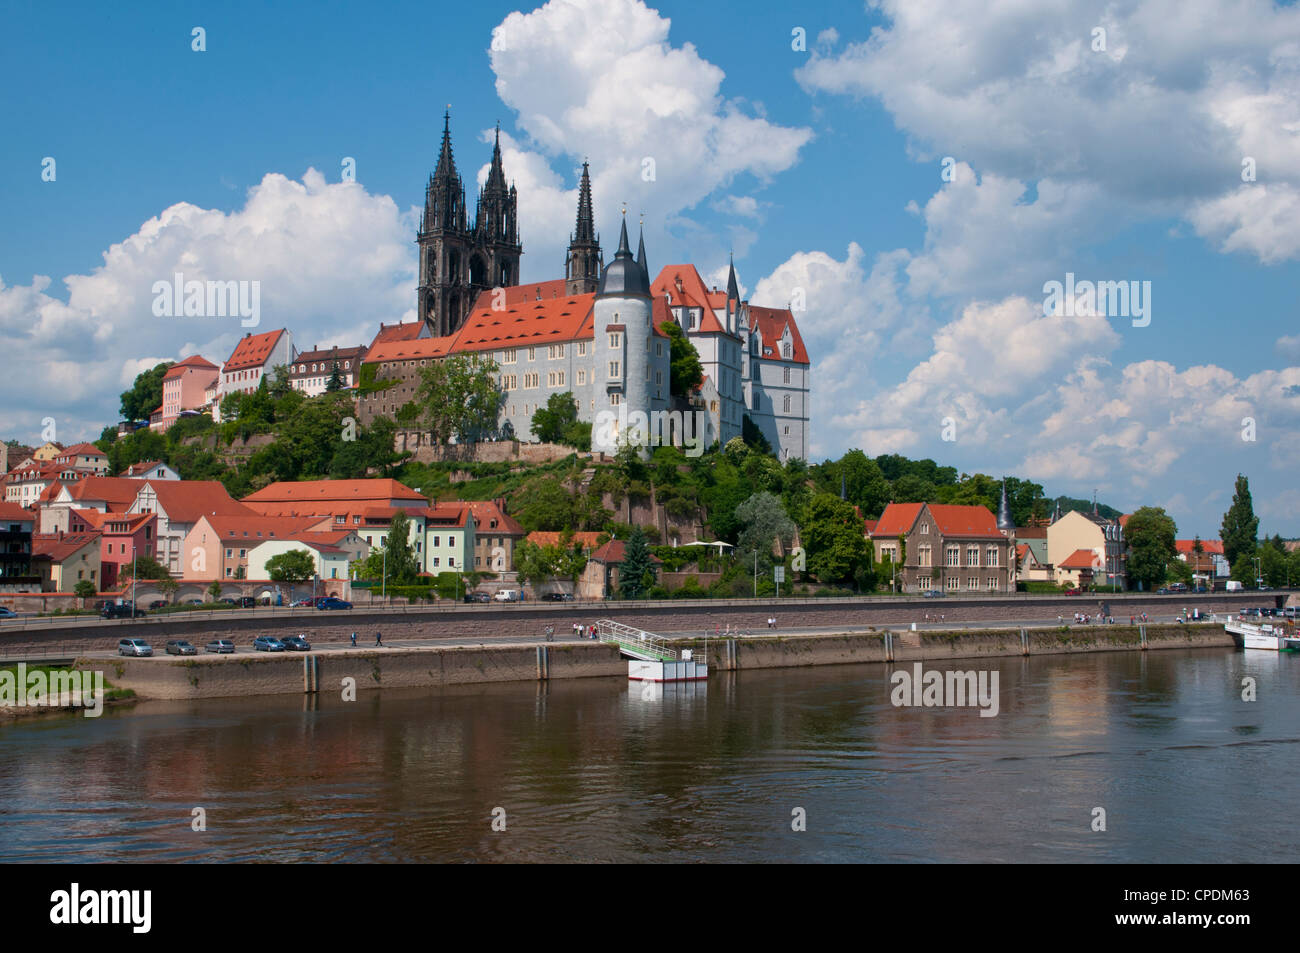 The town of Meissen, Saxony, Germany, Europe - Stock Image